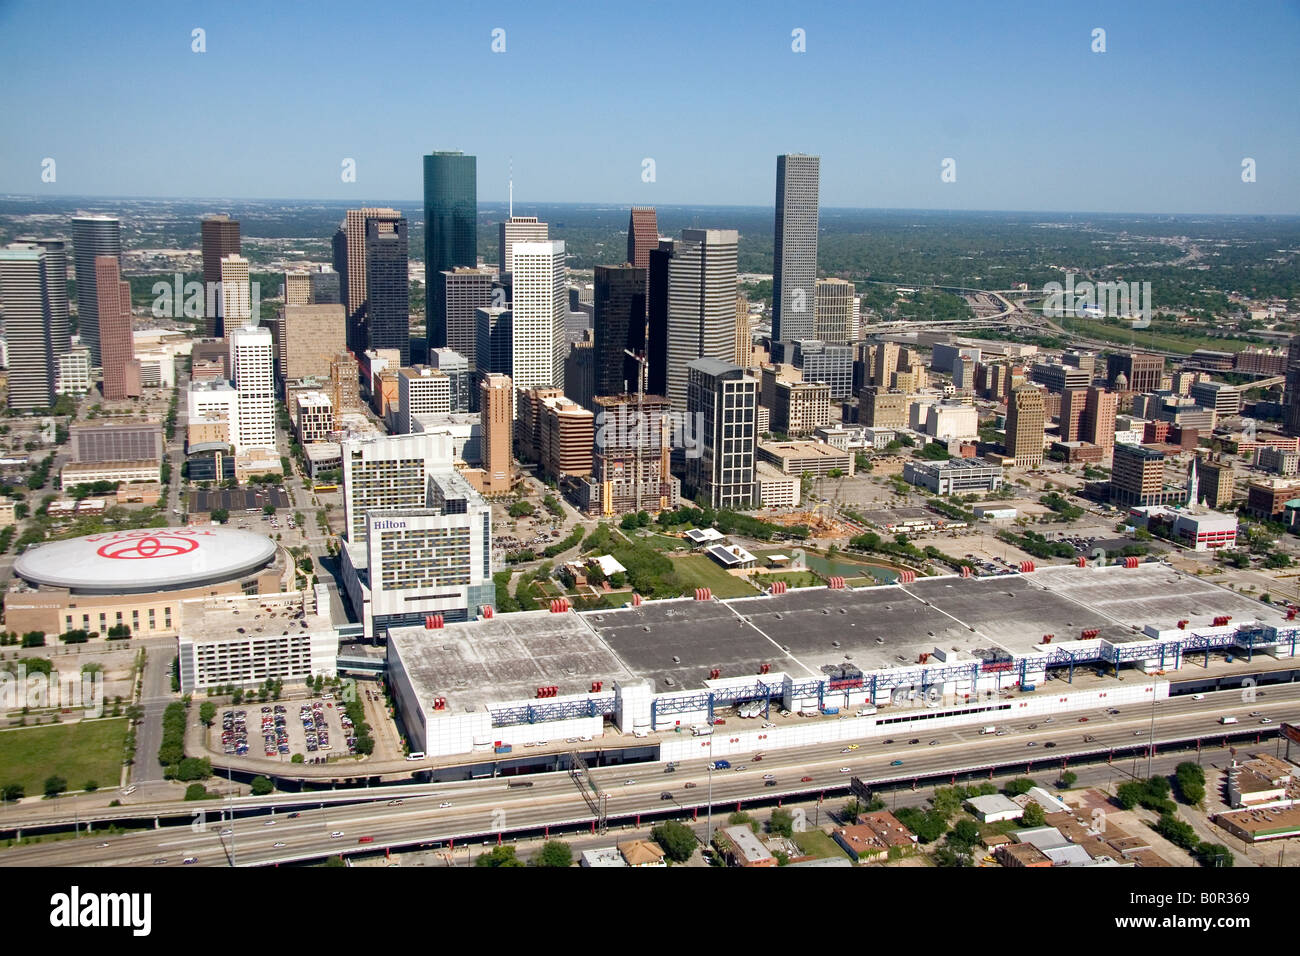 Toyota Houston Tx Aerial View Of Downtown Houston Texas With Convention Center And